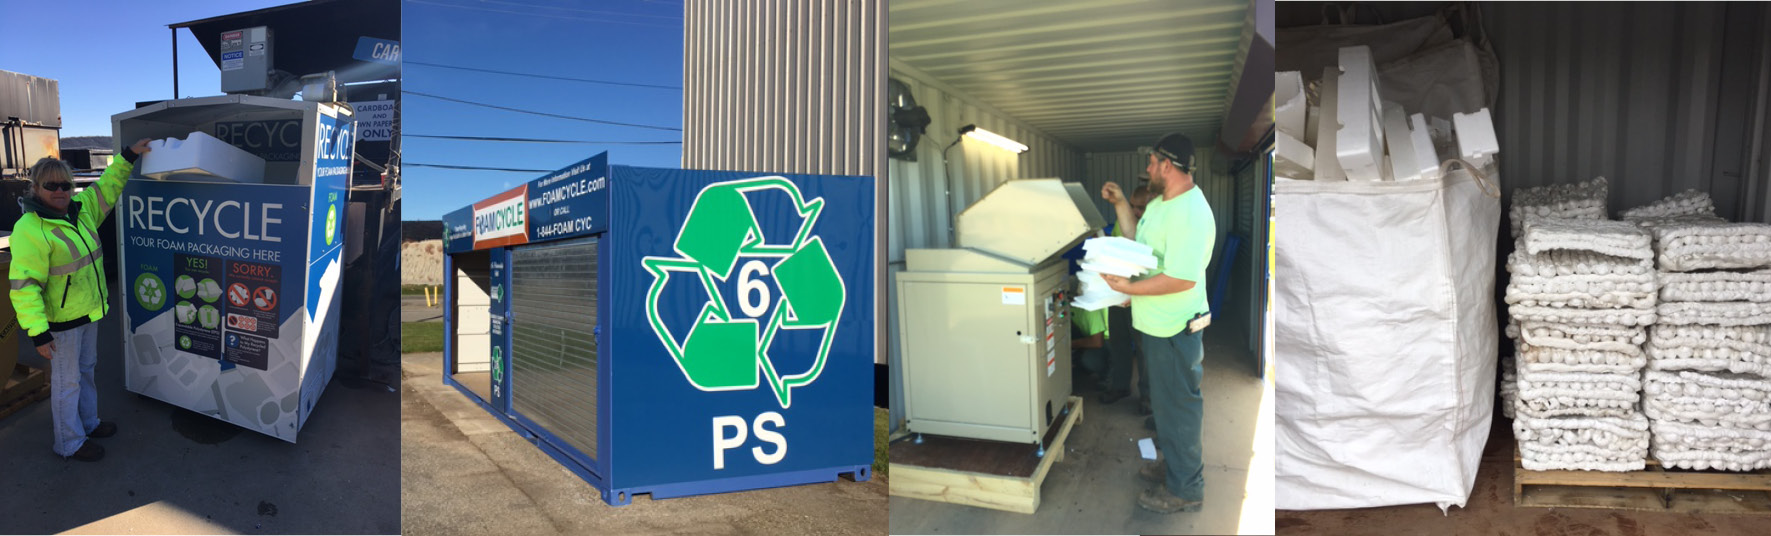 Foam Cycle Recycling EPS Solution